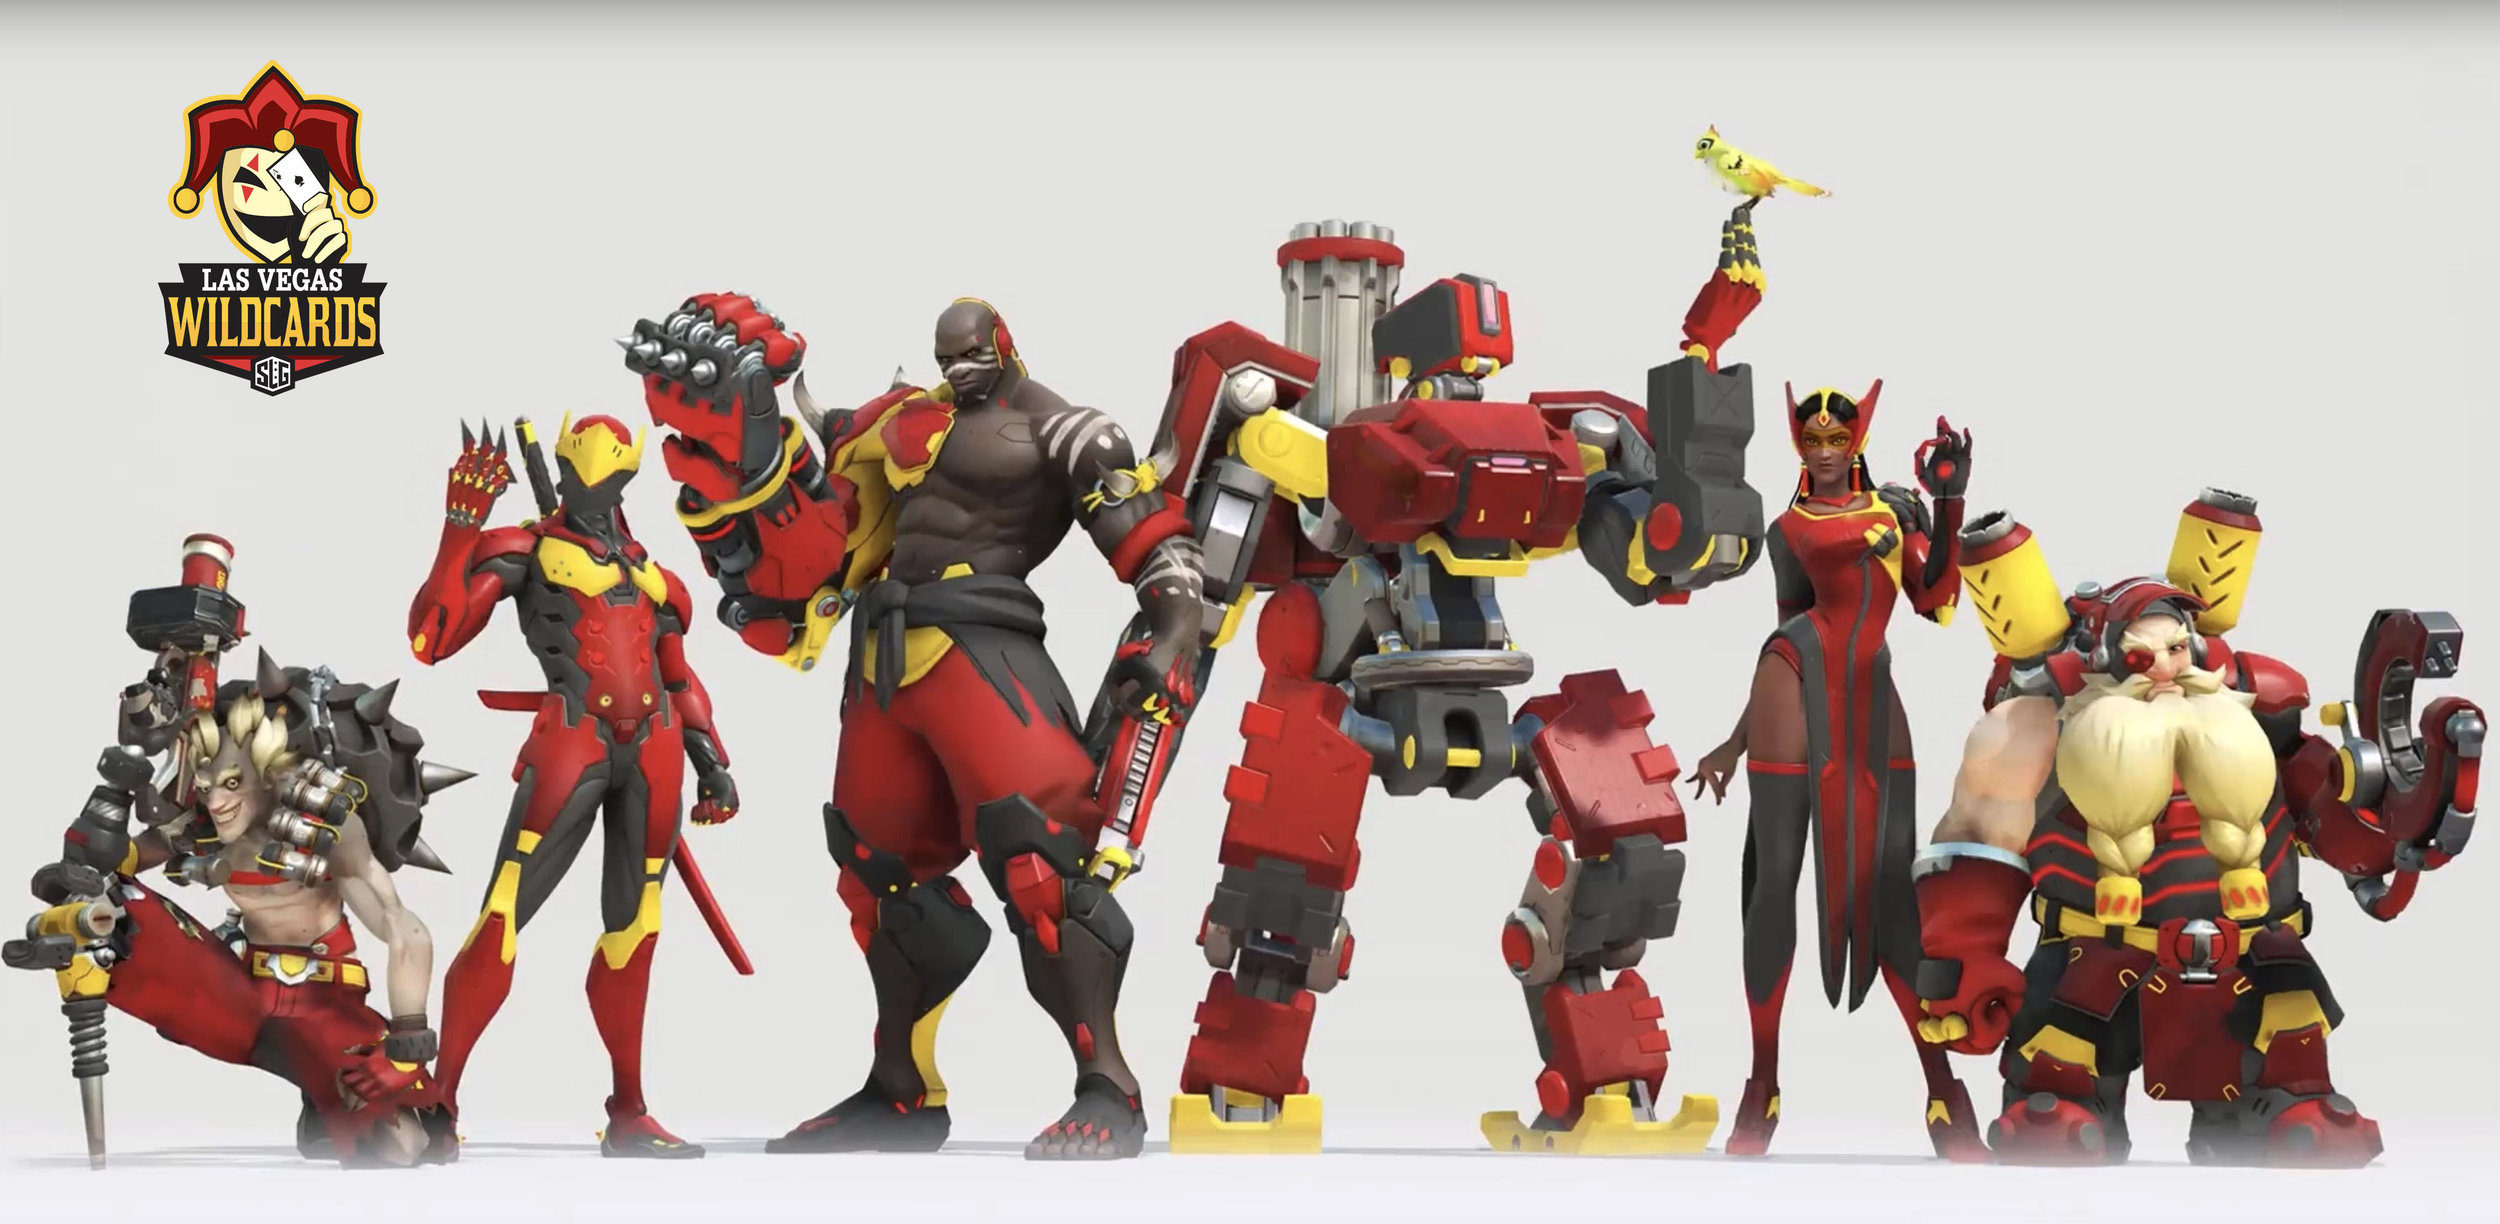 Overwatch Skin for Wild Cards